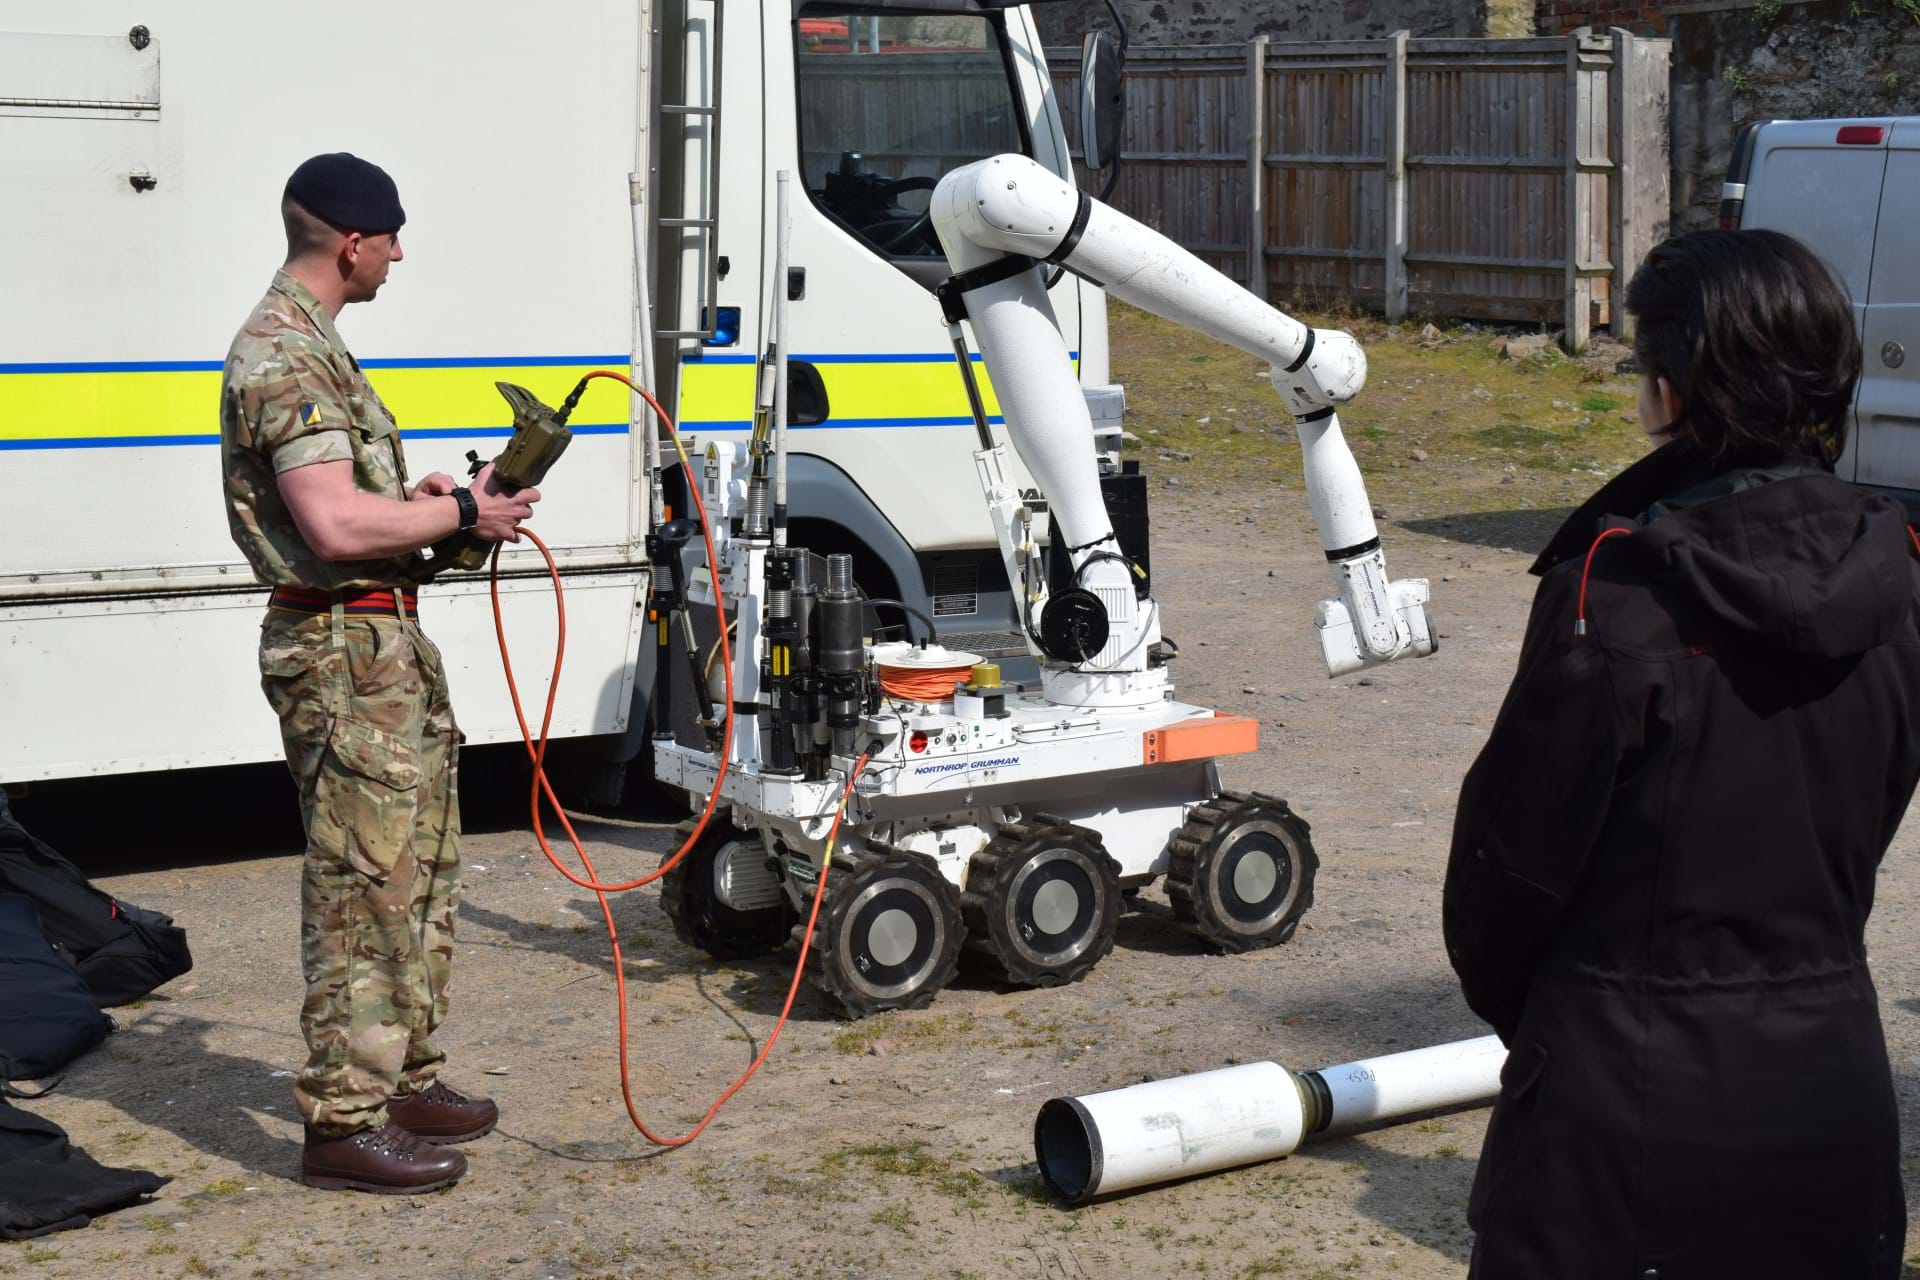 A member of the bomb disposal unit using the bomb disposal robot in front of students